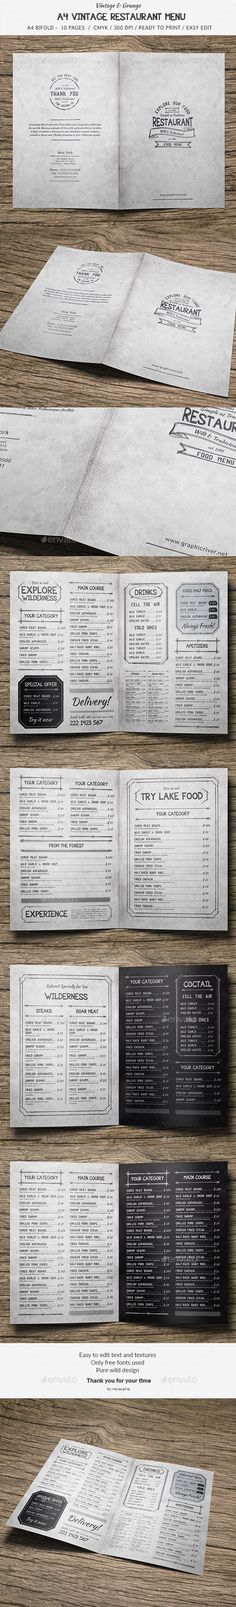 10 Pages A4 BiFold Vintage Menu Template PSD. Download here: http://graphicriver.net/item/a4-bifold-vintage-menu-10-pages/15585650?ref=ksioks